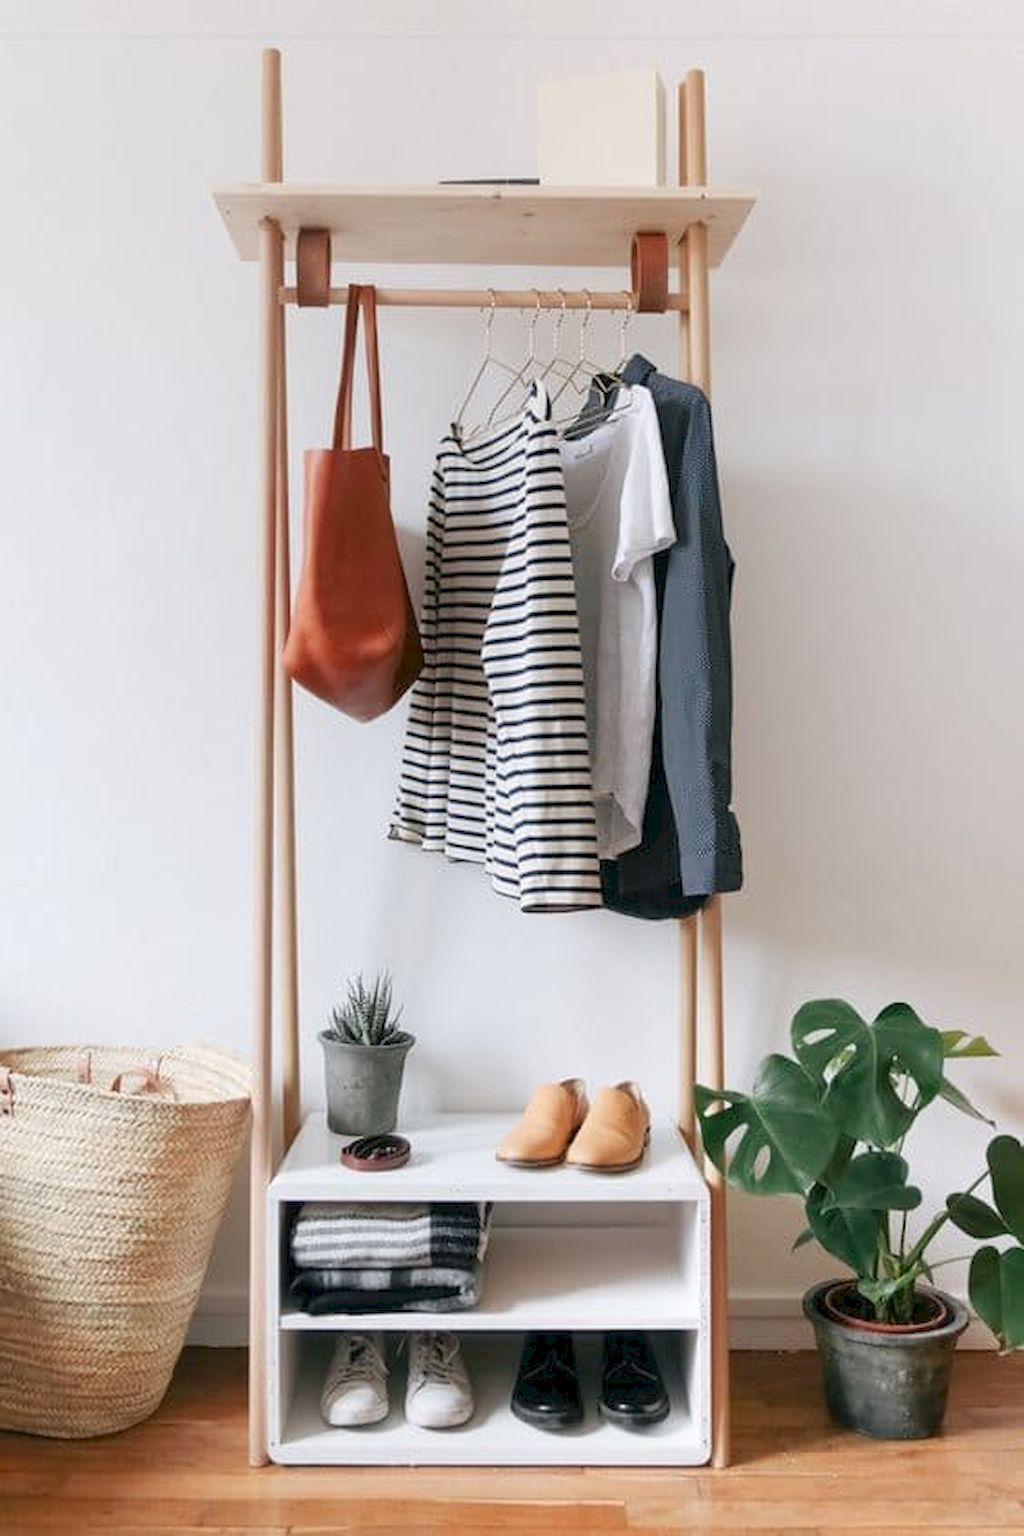 Awesome 40 Diy First Apartment Organization Ideas Https Roomadness Com 2017 10 27 40 Diy First Apartment Diy Clothes Rack Organization Bedroom Diy Furniture